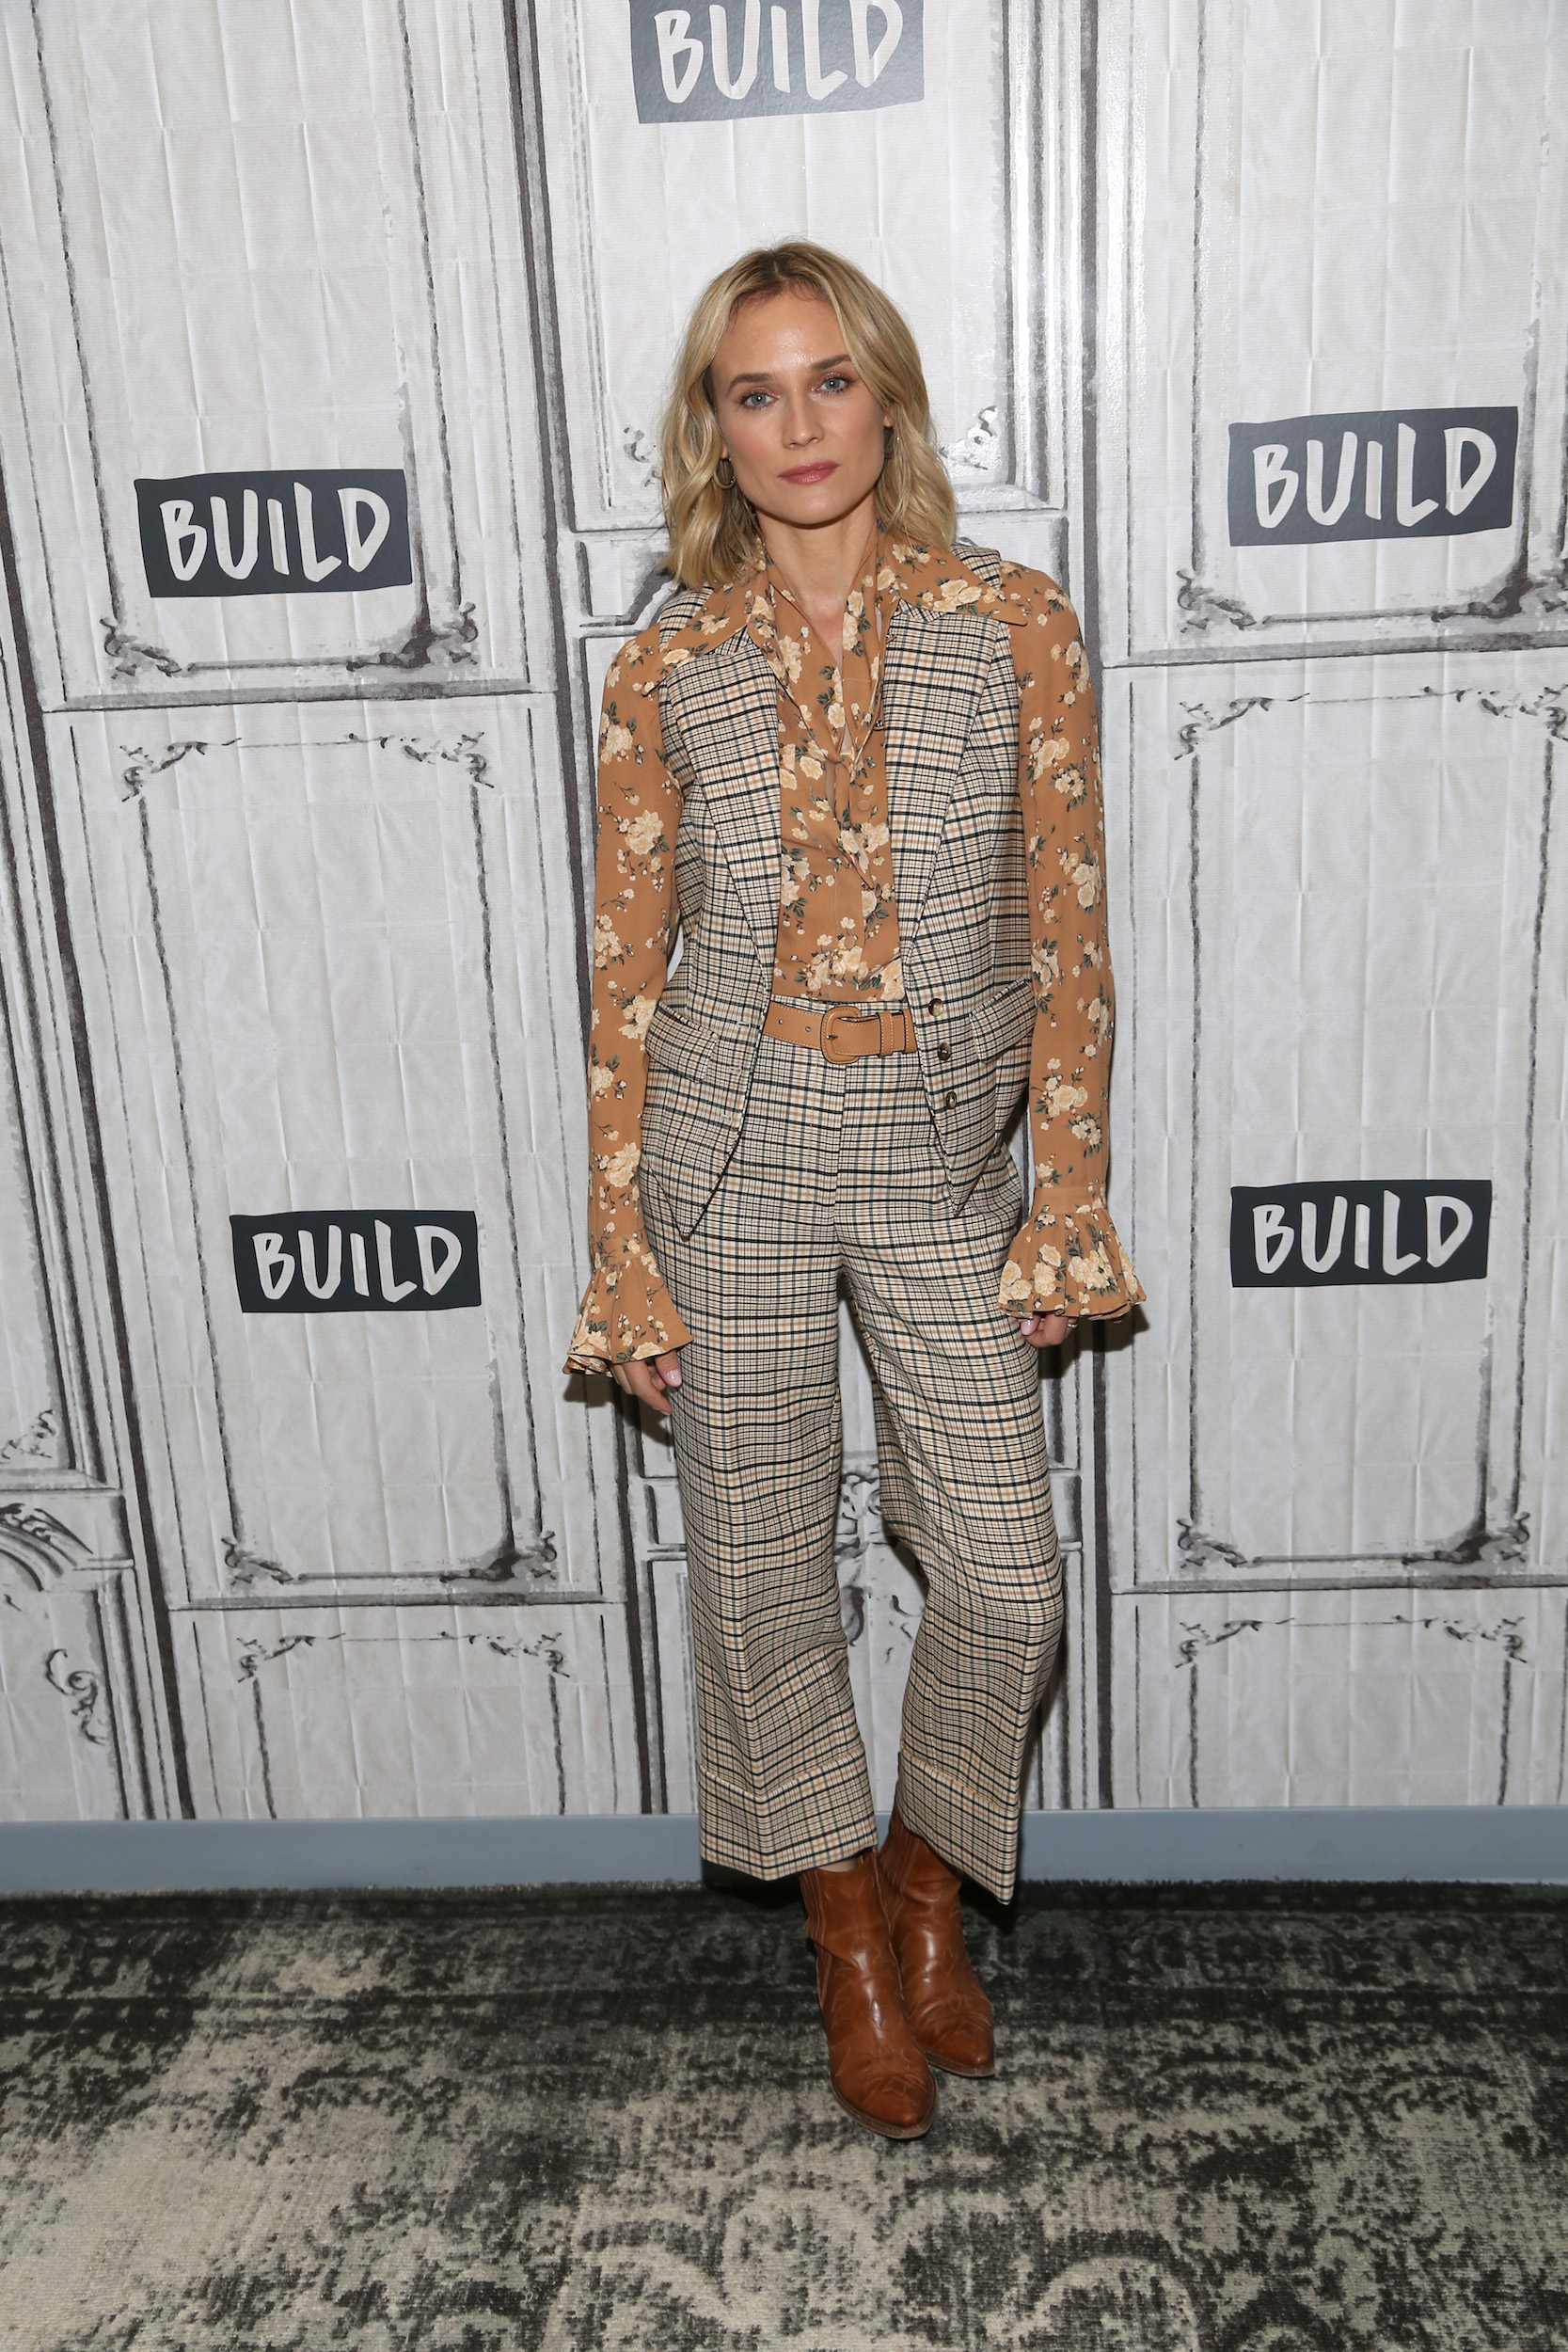 NEW YORK, NEW YORK - JULY 18: Diane Kruger attends Build Series to discuss her role in the film 'The Operative' at Build Studio on July 18, 2019 in New York City. (Photo by Manny Carabel/Getty Images)